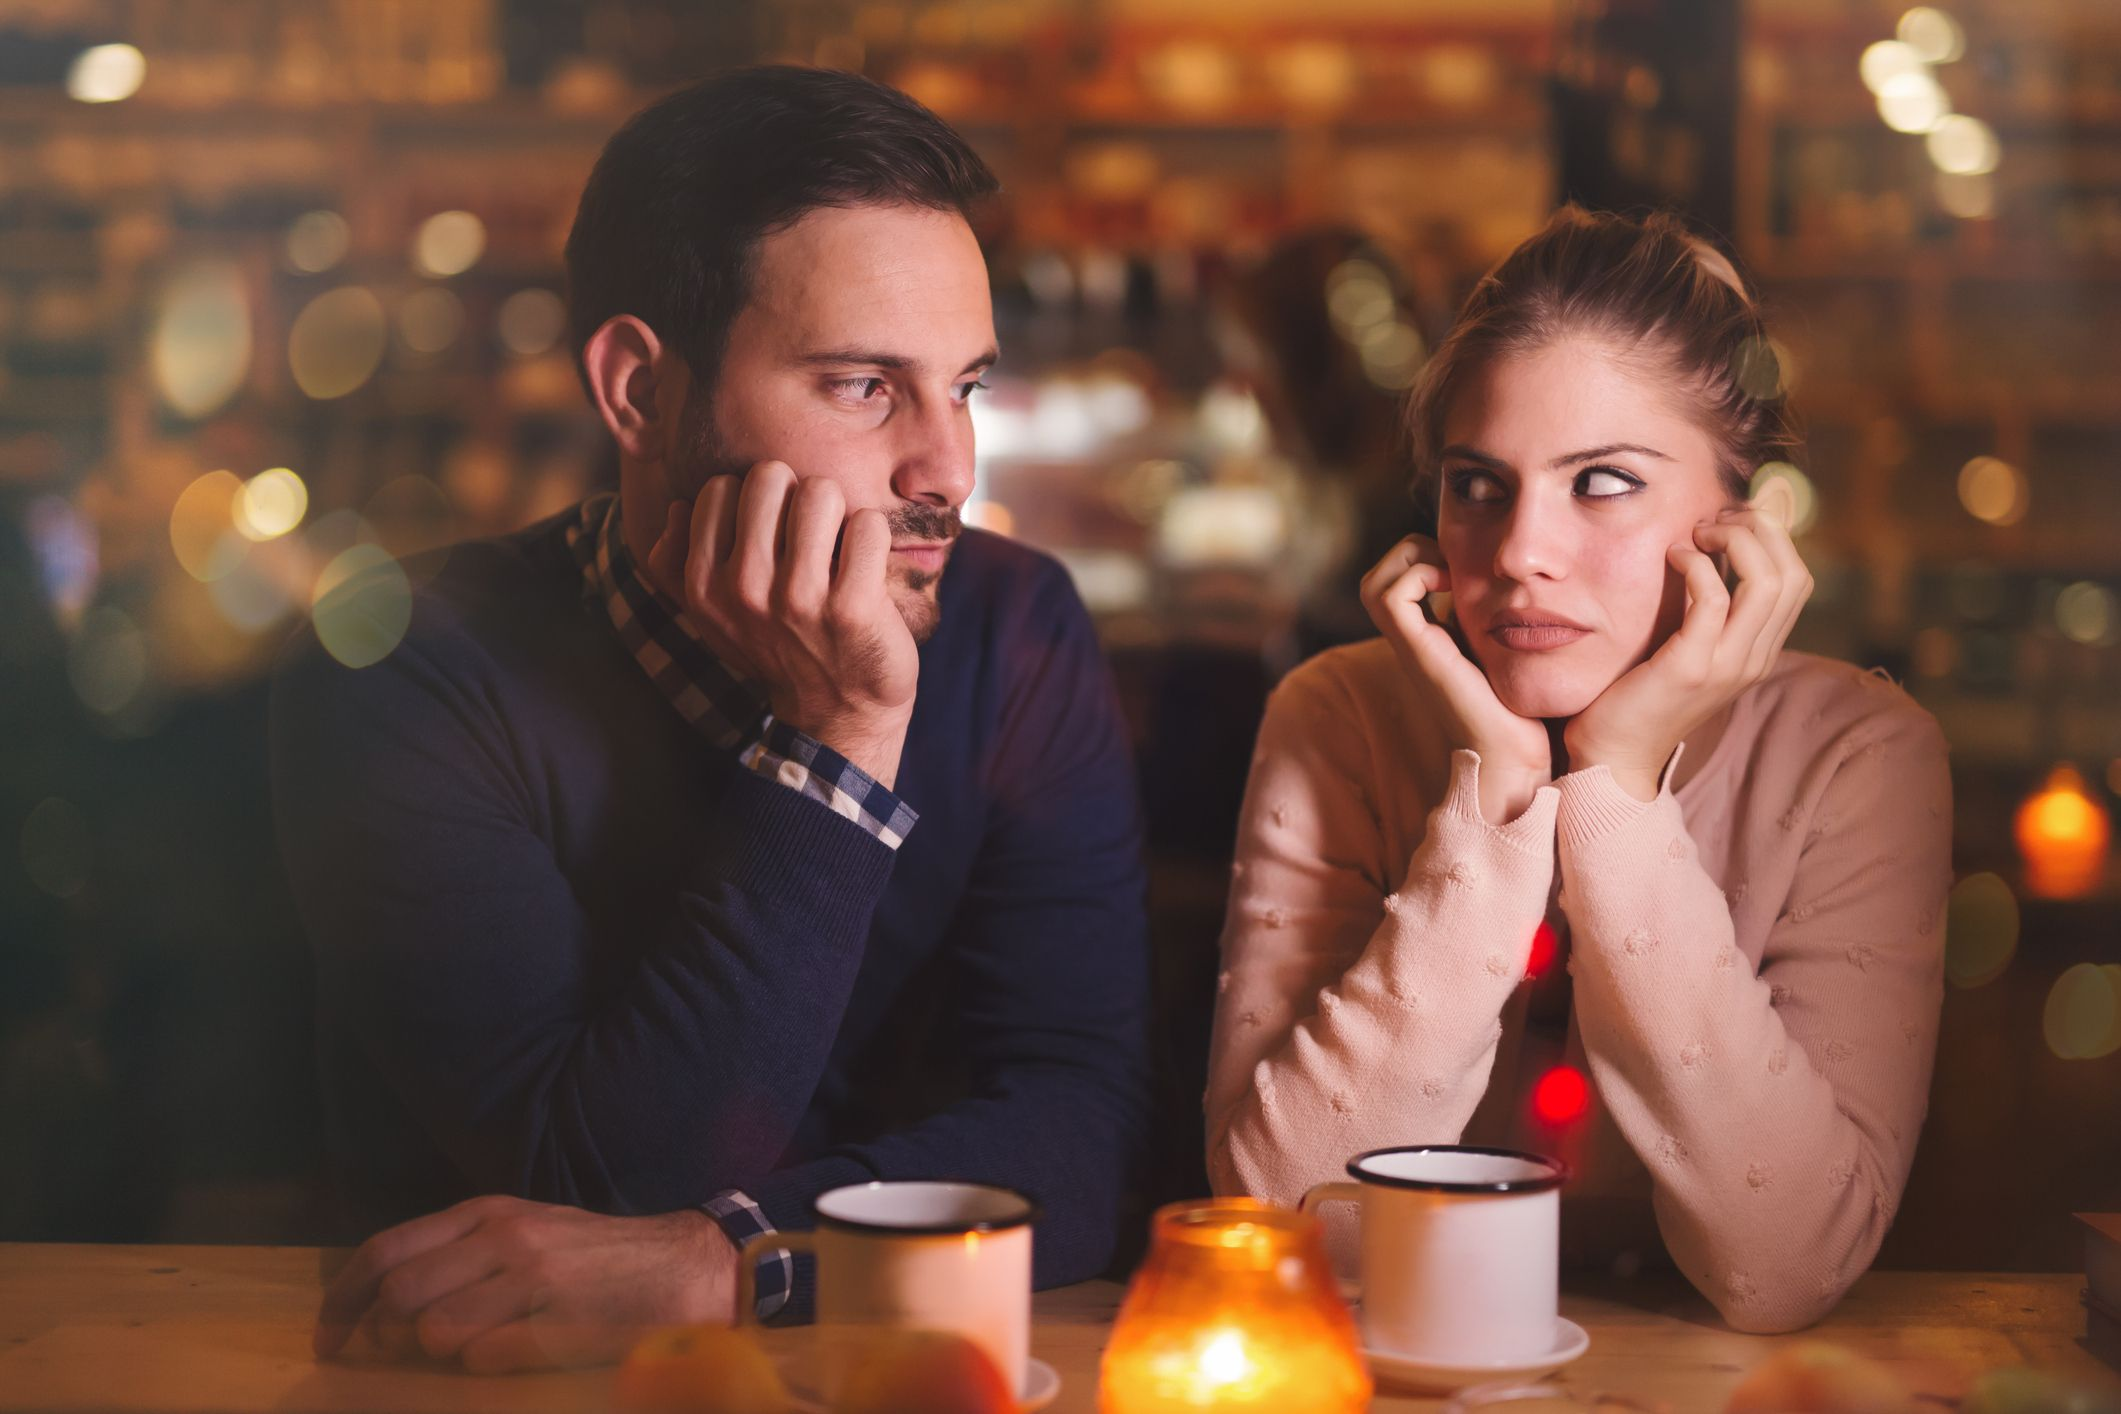 18 Women Reveal the Worst Things Men Have Done on First Dates